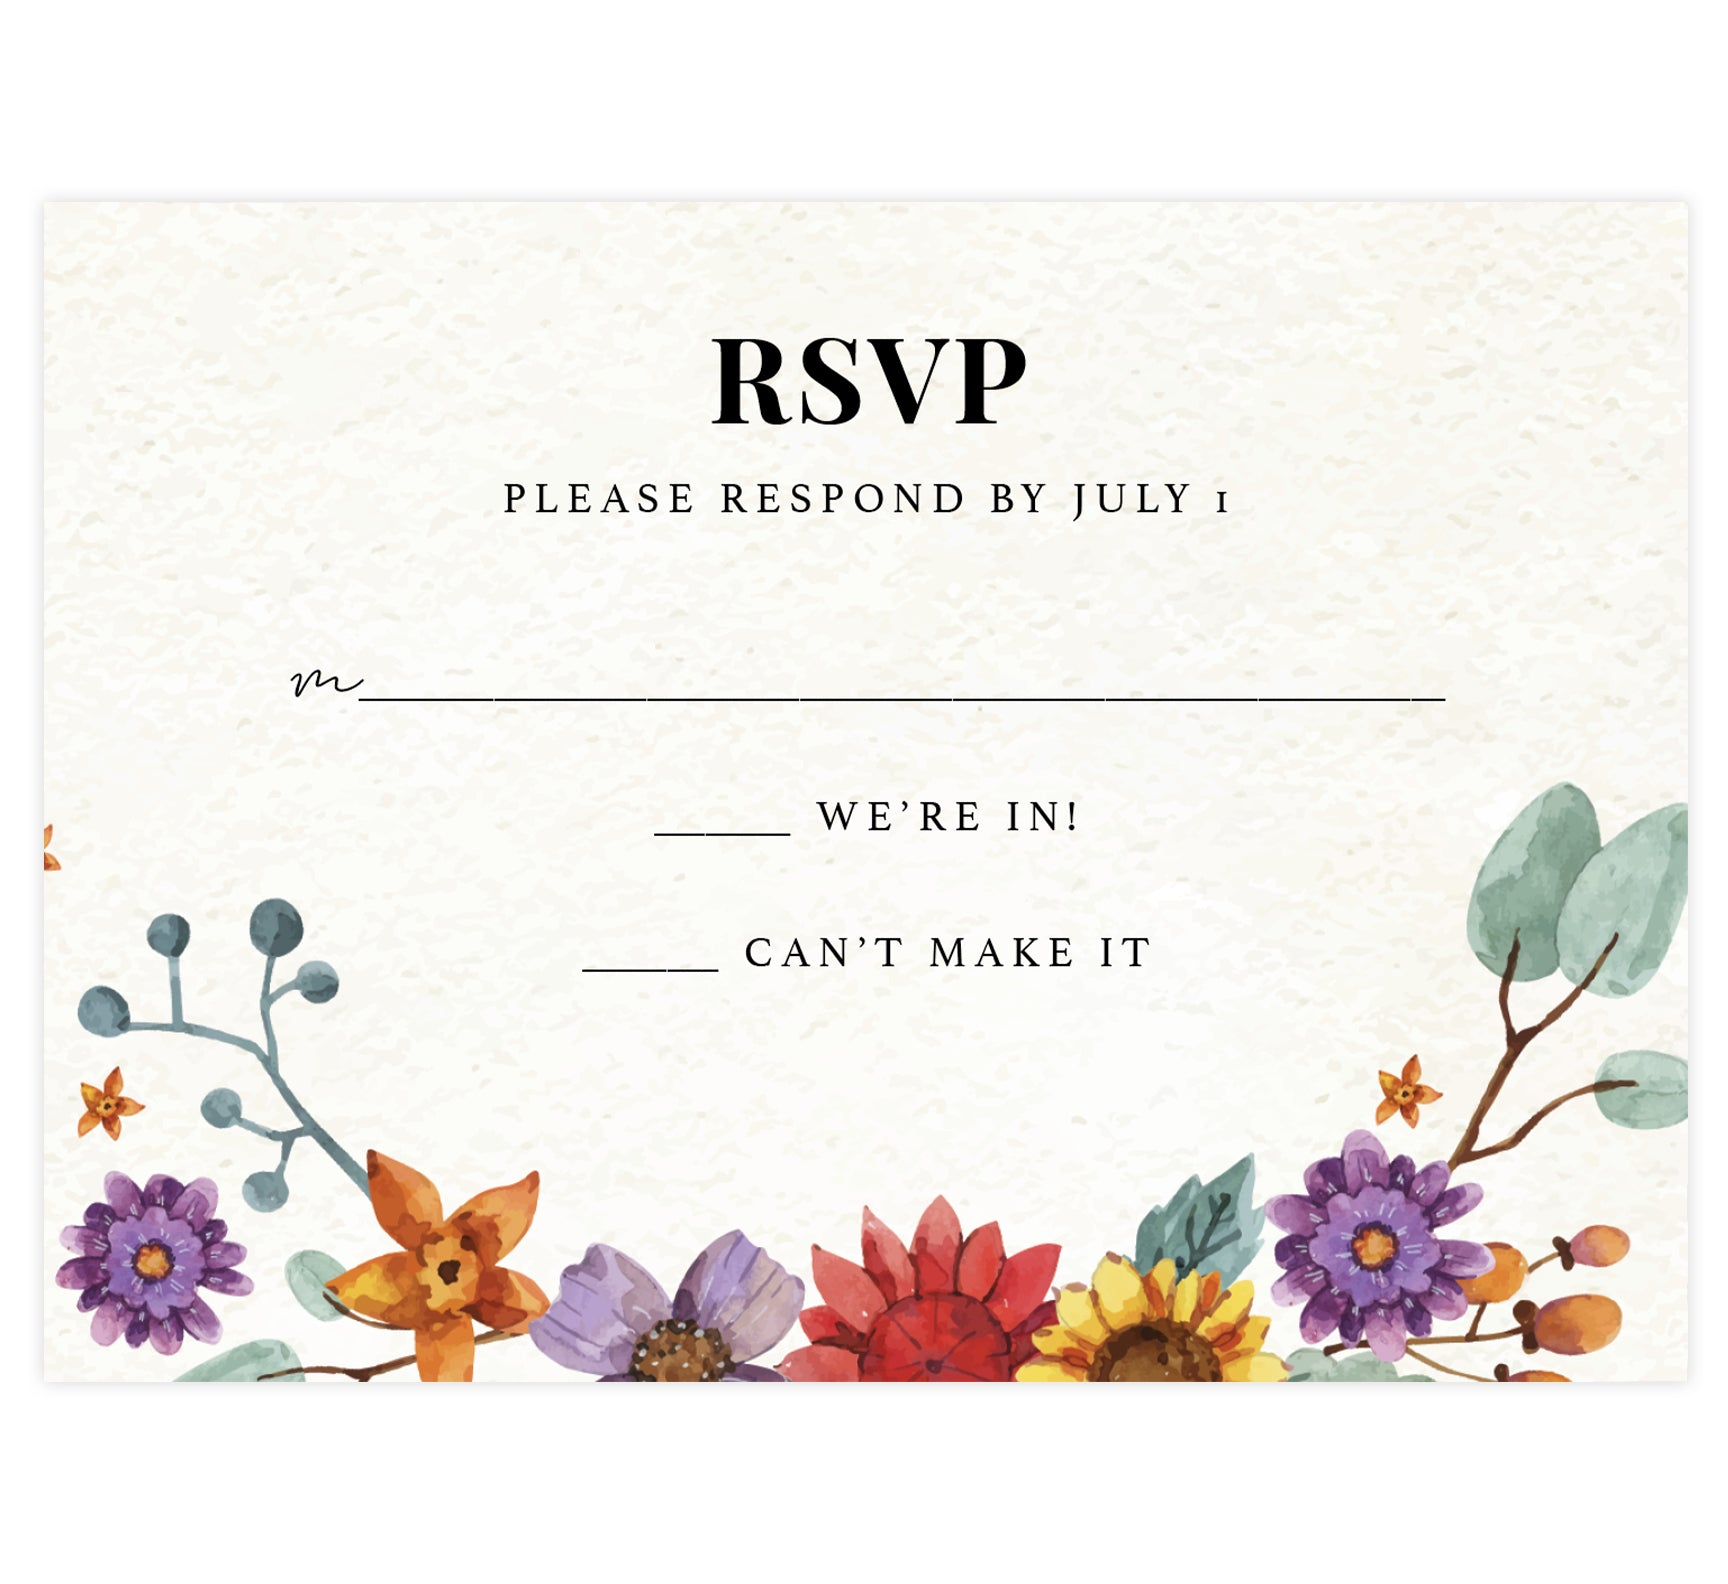 Colorful Floral Frame wedding response card; textured background with black text and colorful florals on the bottom edge